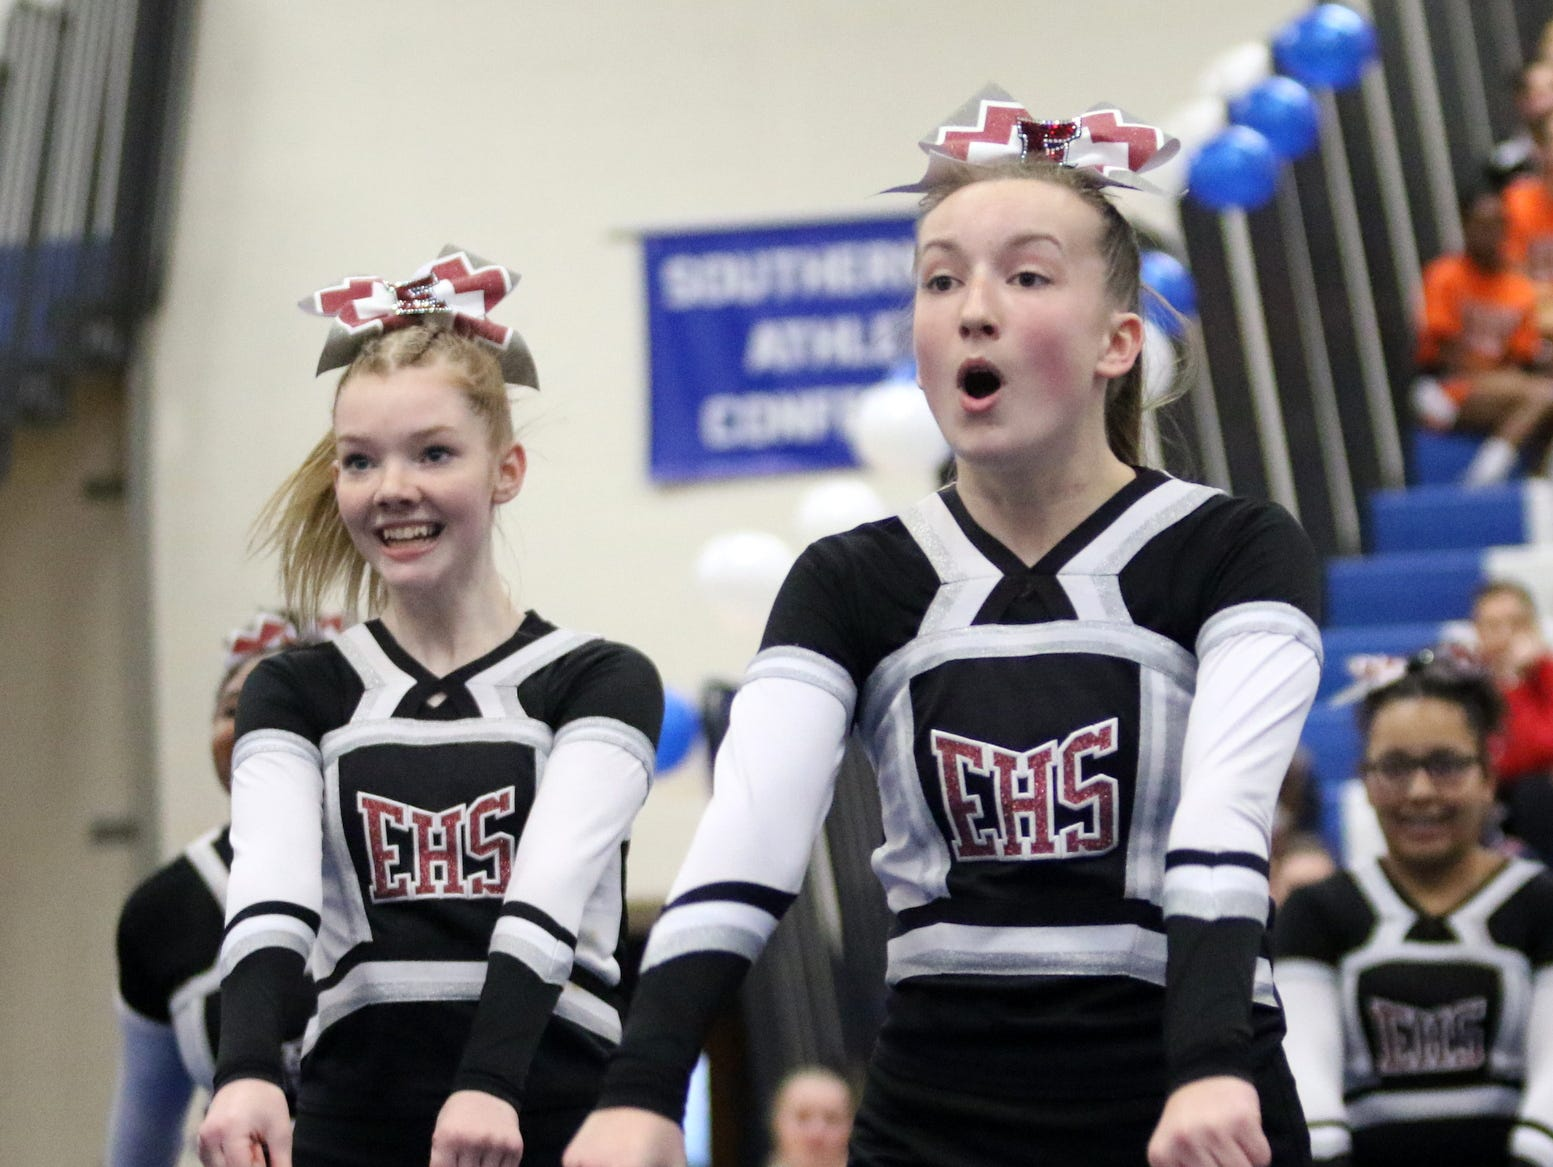 Elmira junior varsity cheerleaders compete at the STAC Winter Cheer Championships on Feb. 16, 2019 at Horseheads Middle School.